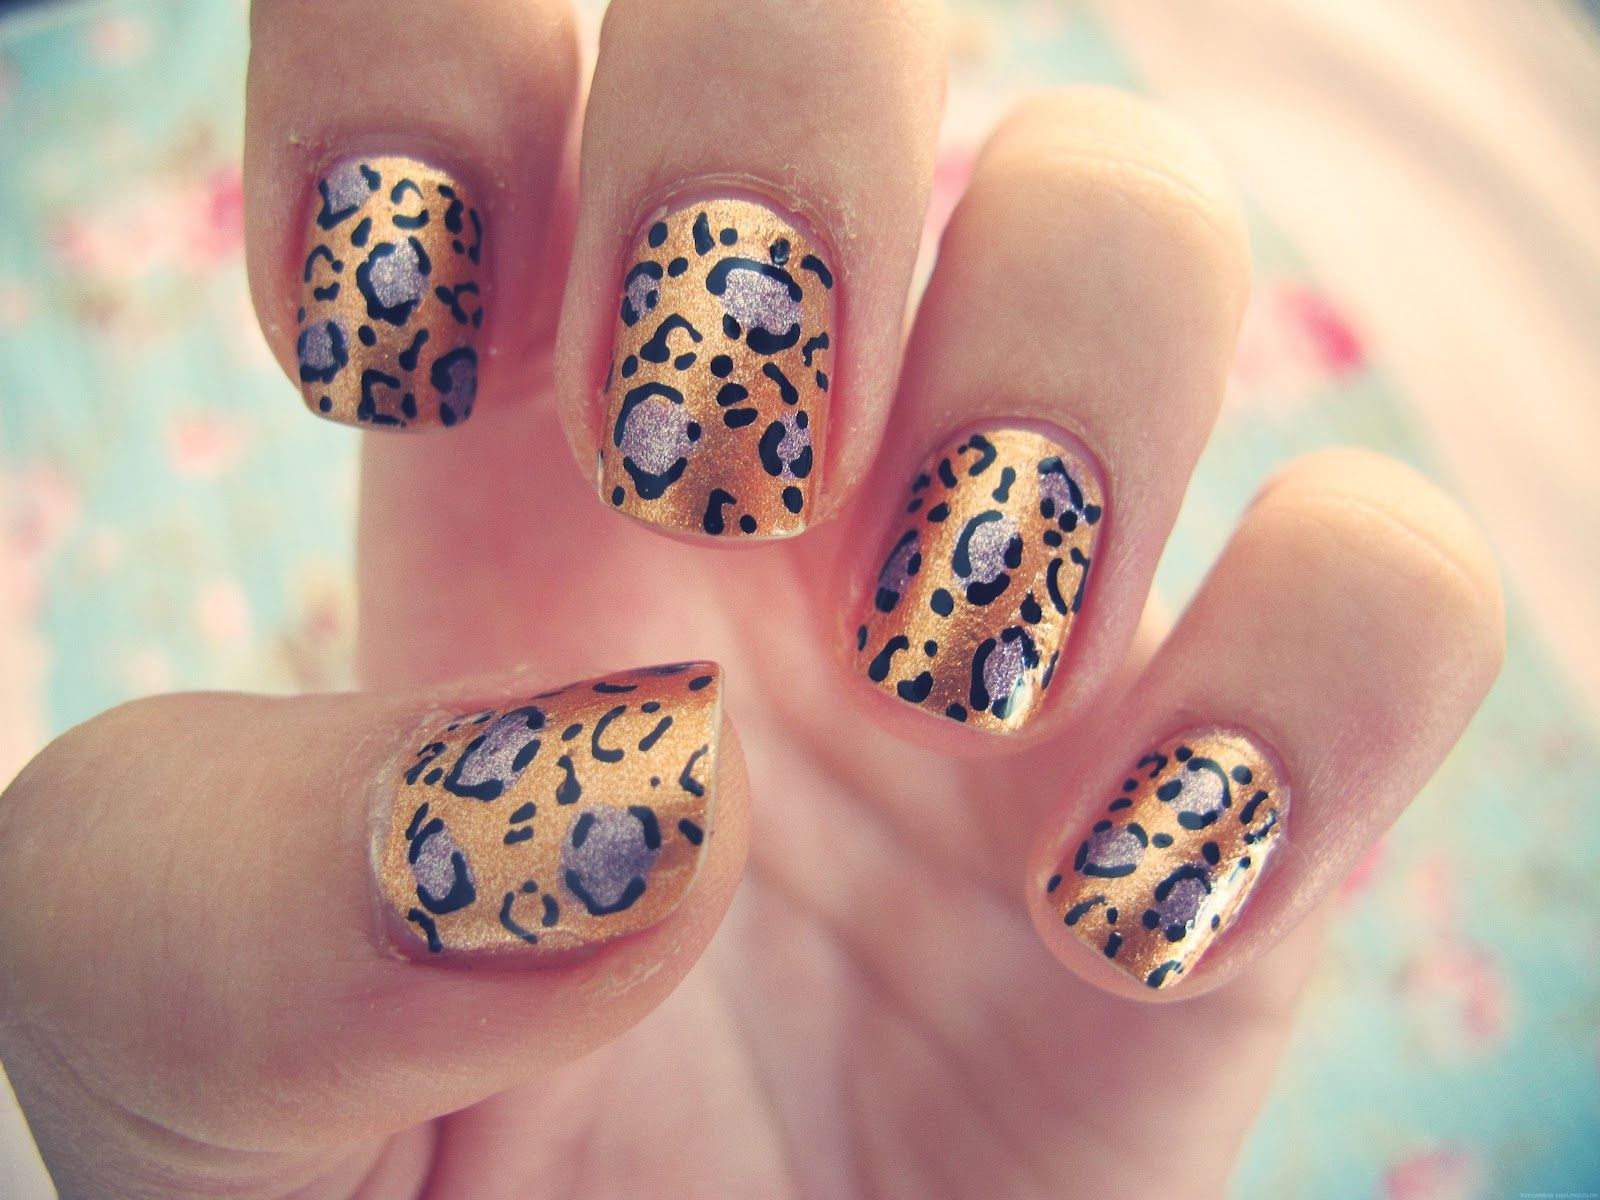 15 Cute Nail Art Designs You Will Fall in Love With | Designer nails ...